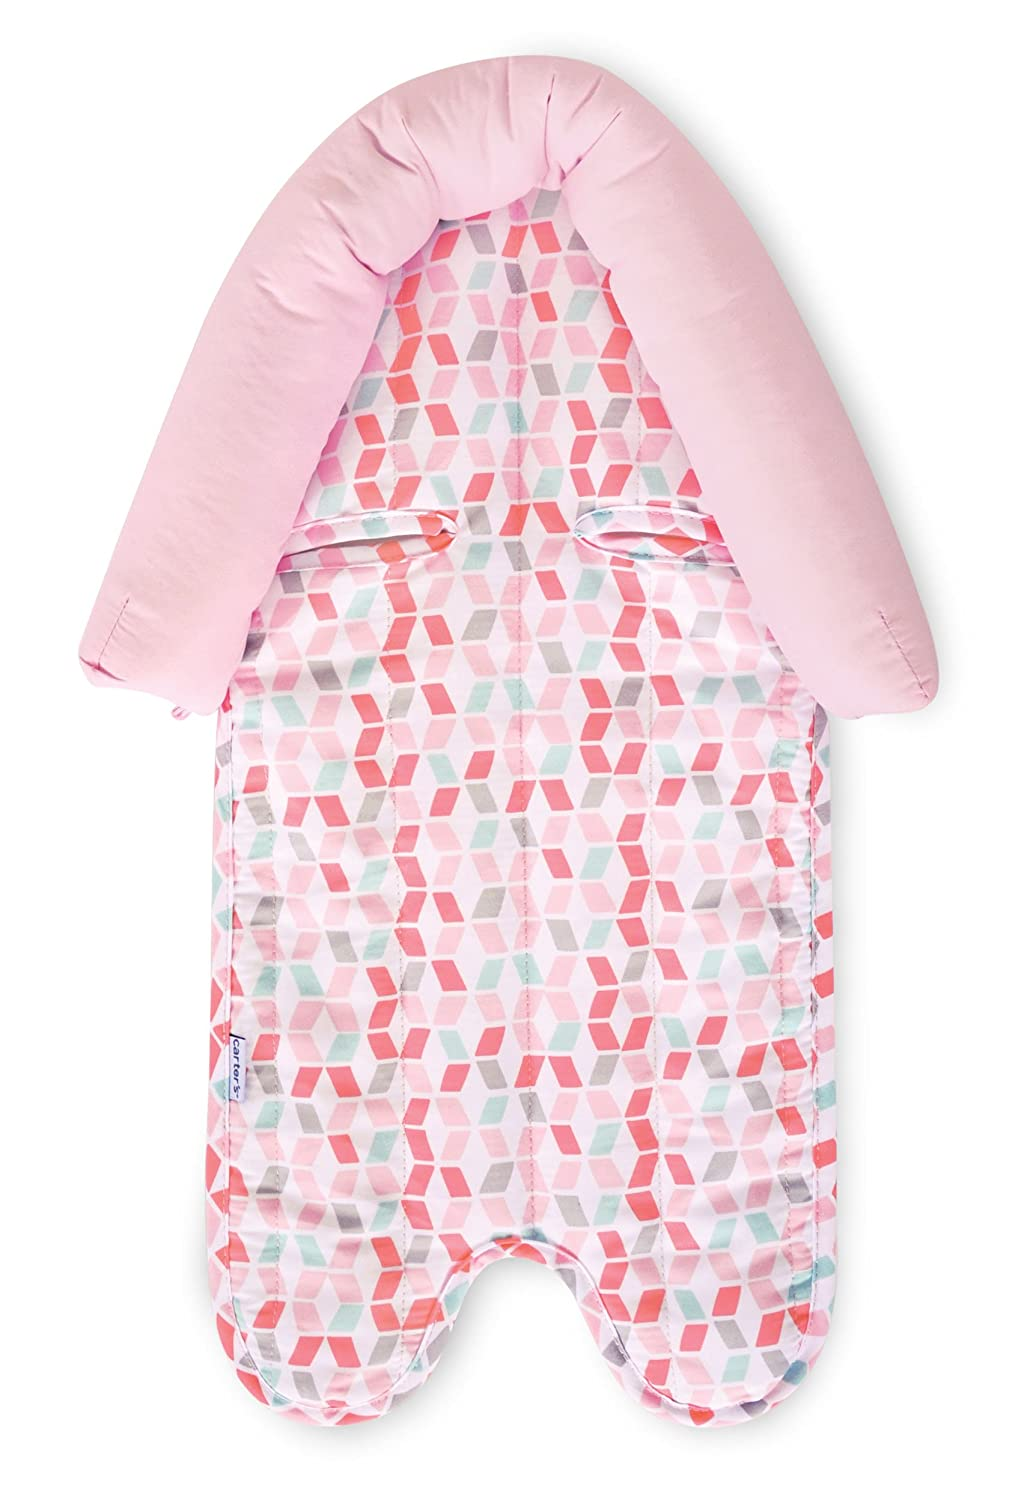 Pink//White Carters Infant Head Support for Carseats Lattice Stollers and Swings